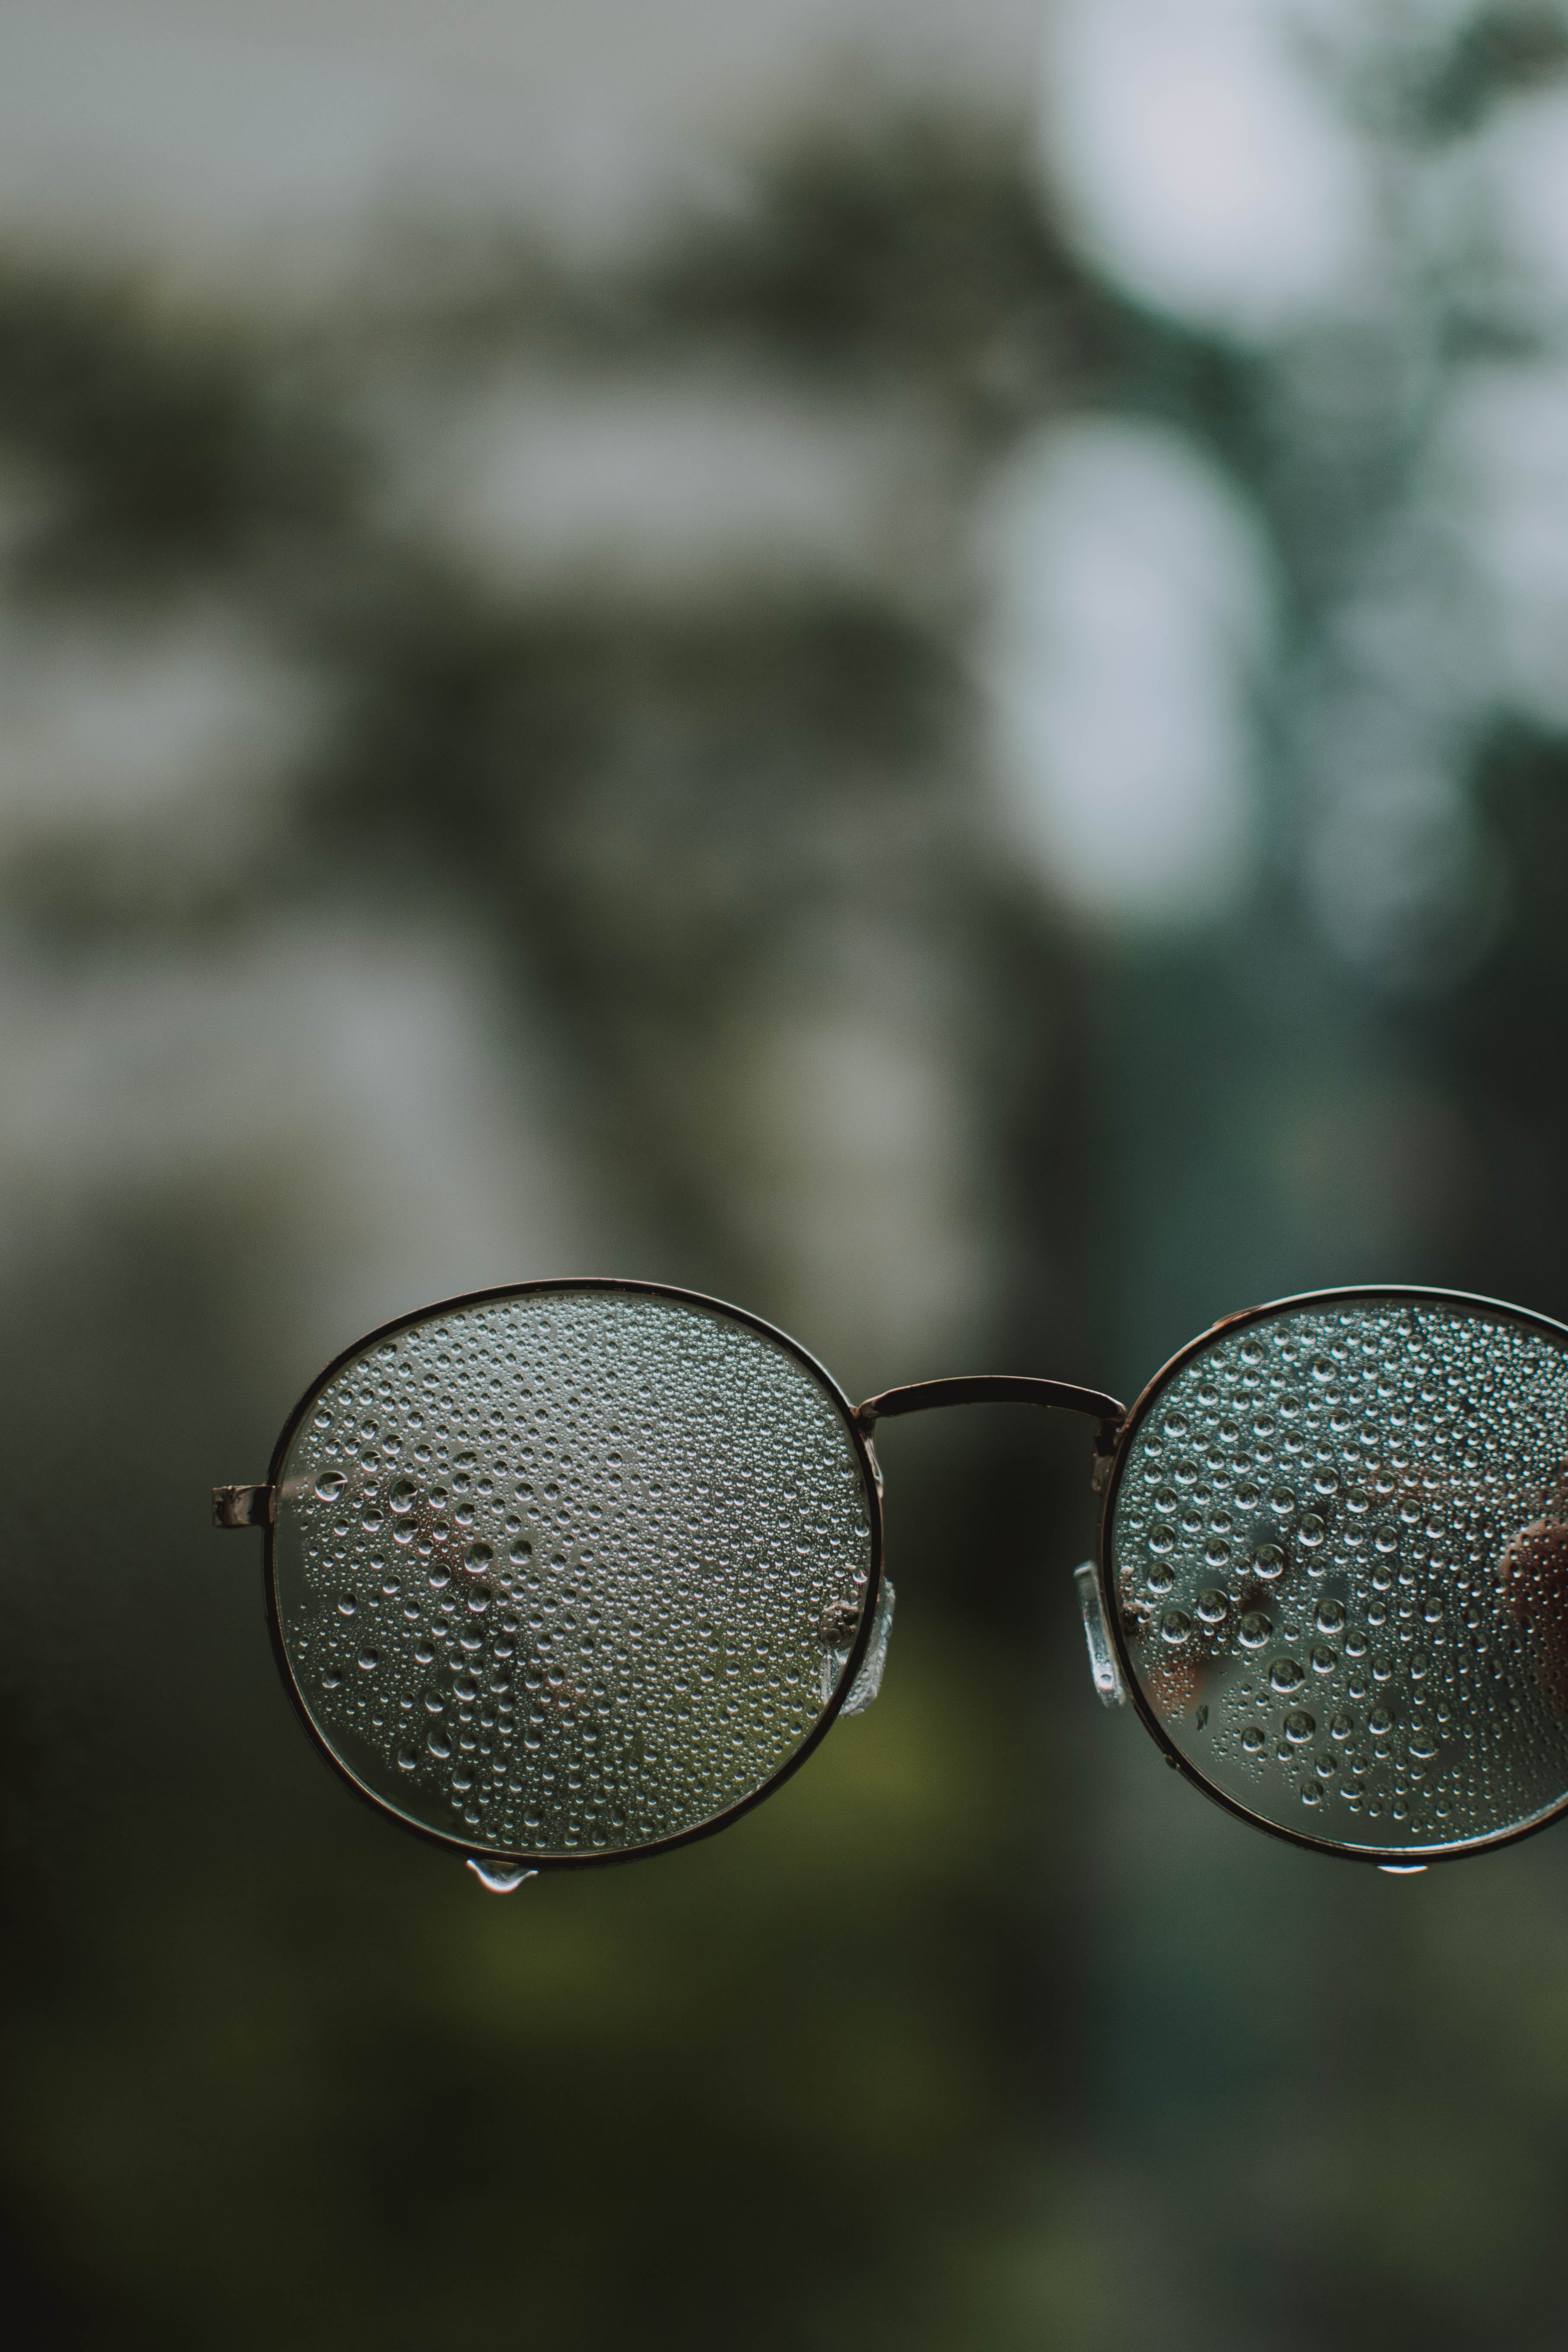 Wet Eyeglasses